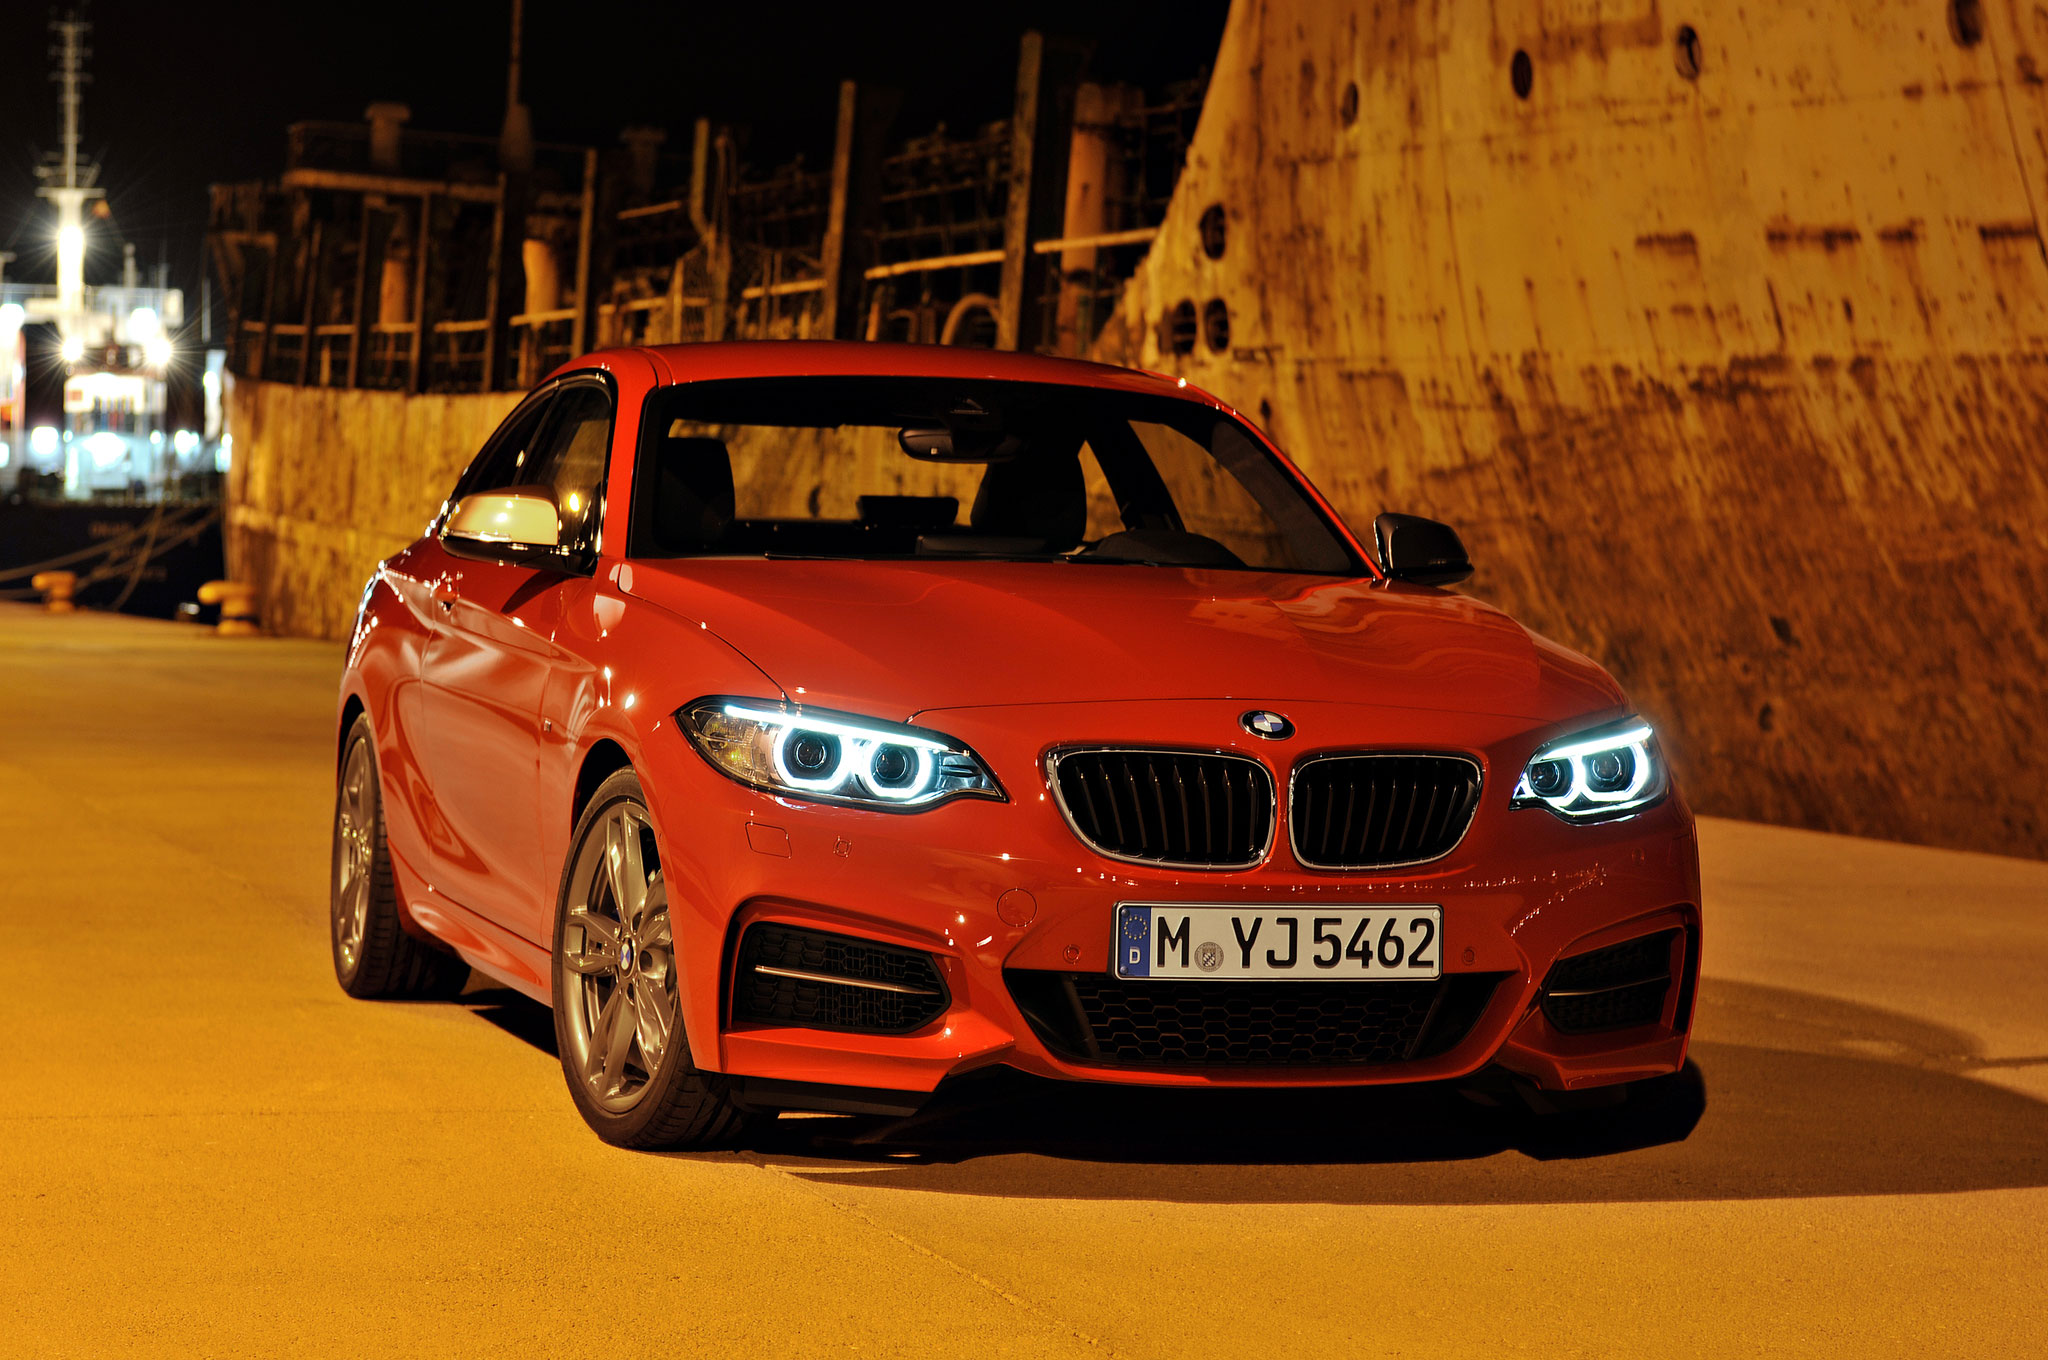 2014 BMW 2 Series Coupe Backgrounds on Wallpapers Vista